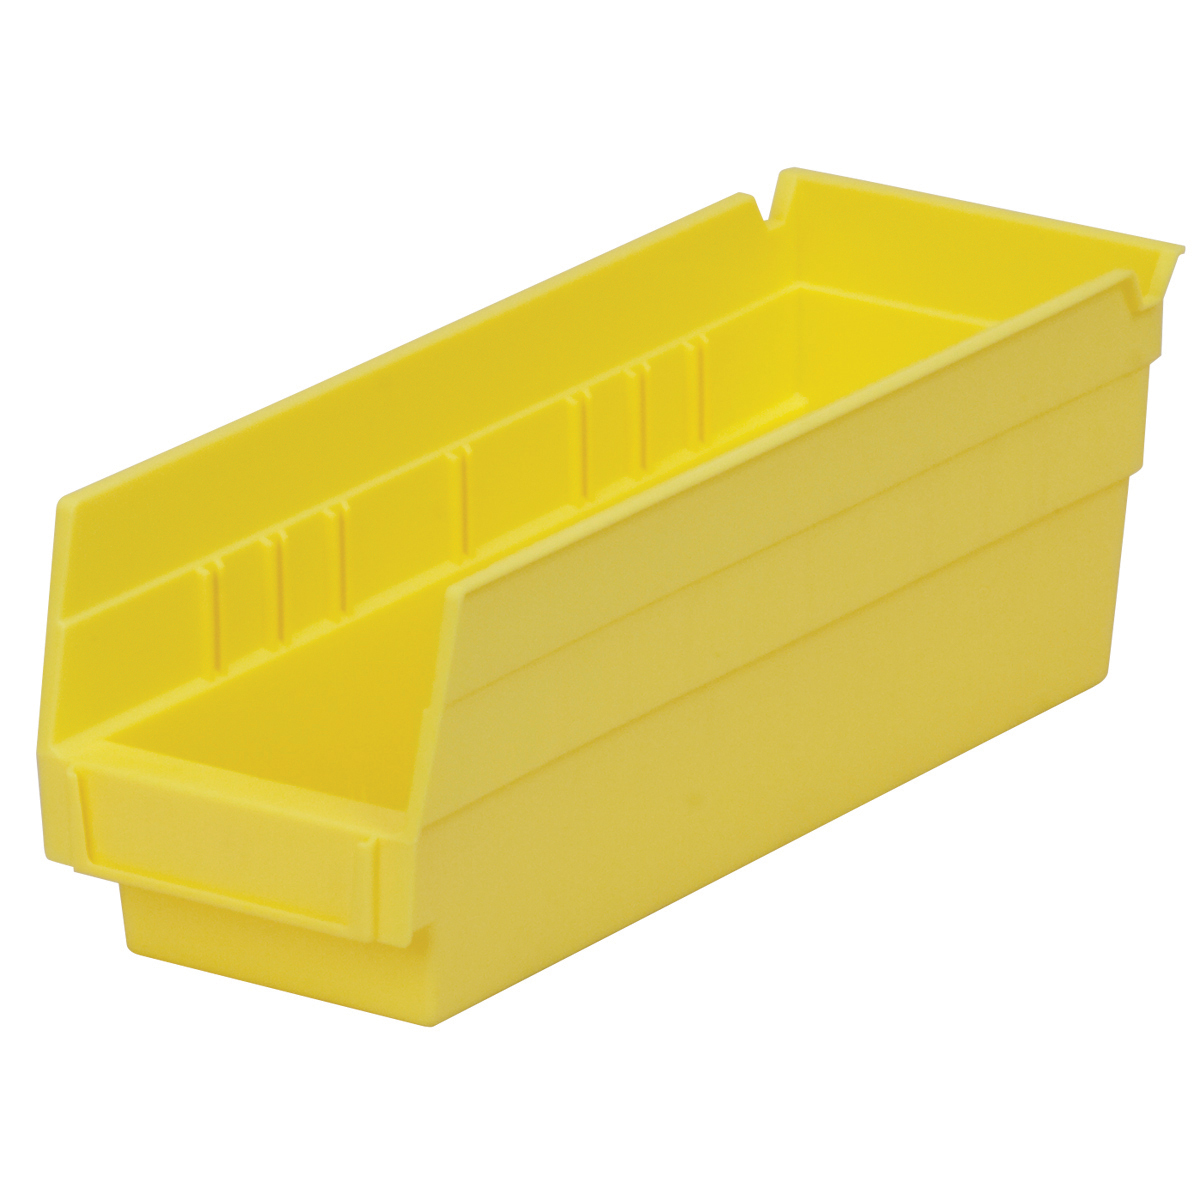 Shelf Bin 11-5/8 x 4-1/8 x 4, Yellow (30120YELLO).  This item sold in carton quantities of 24.